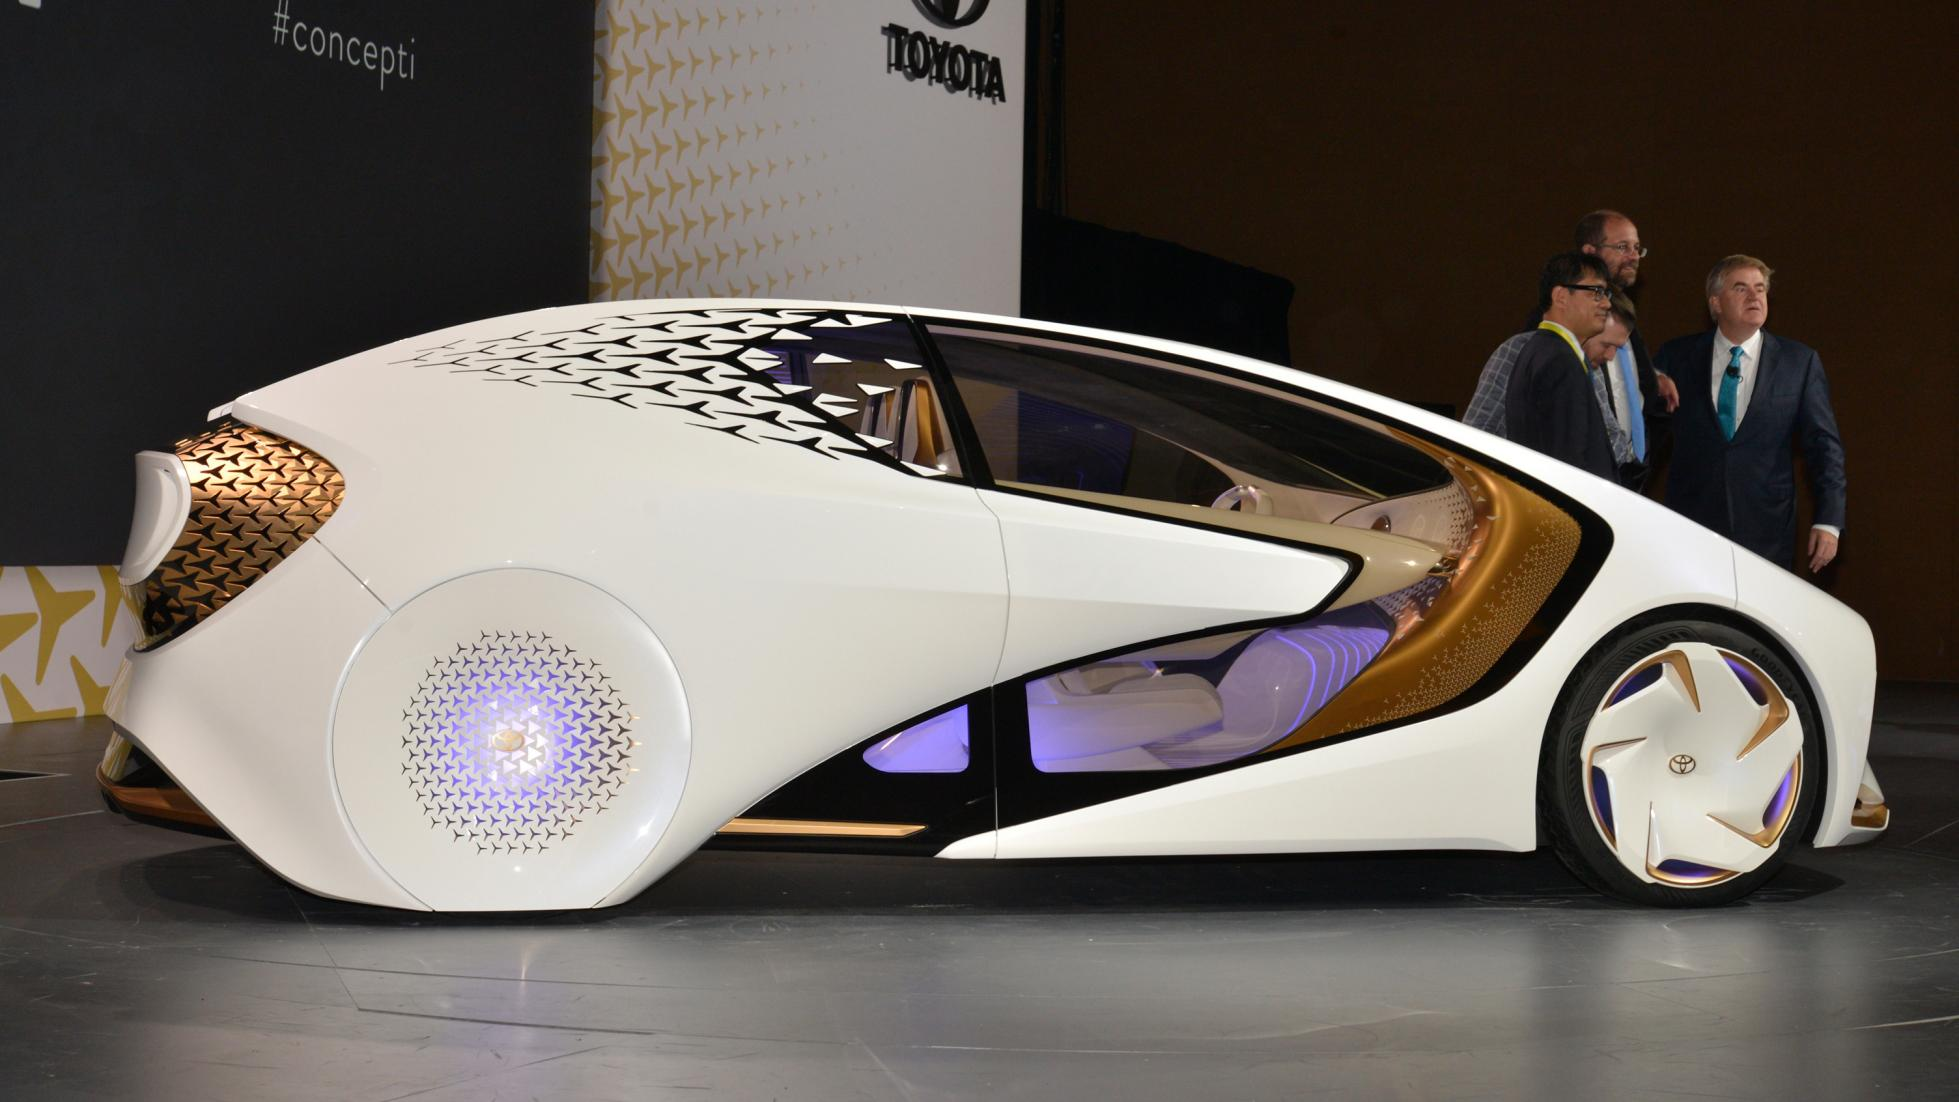 The new Toyota Concept-i could be the Car of the Future